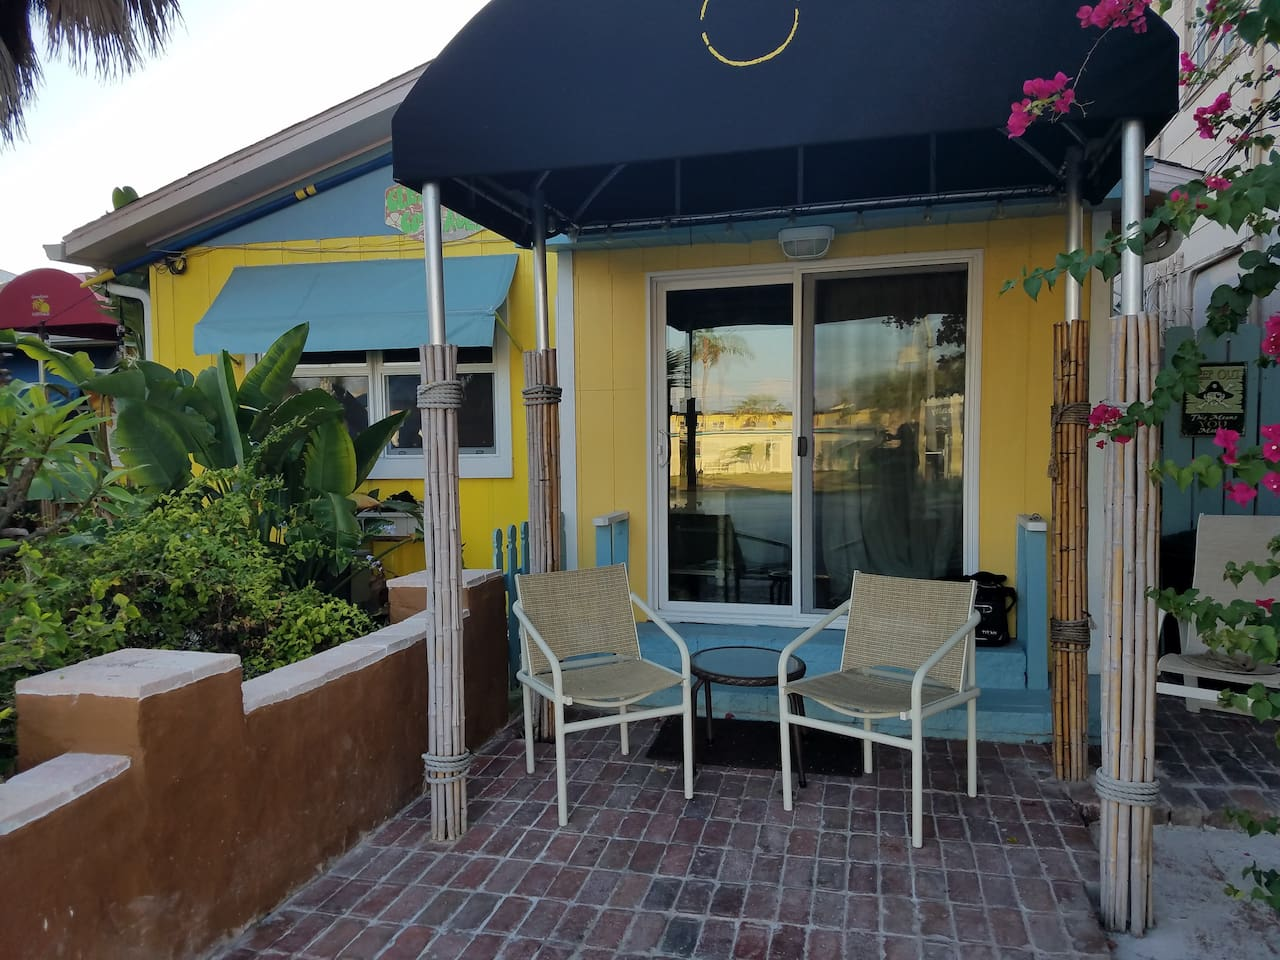 Front porch with awning